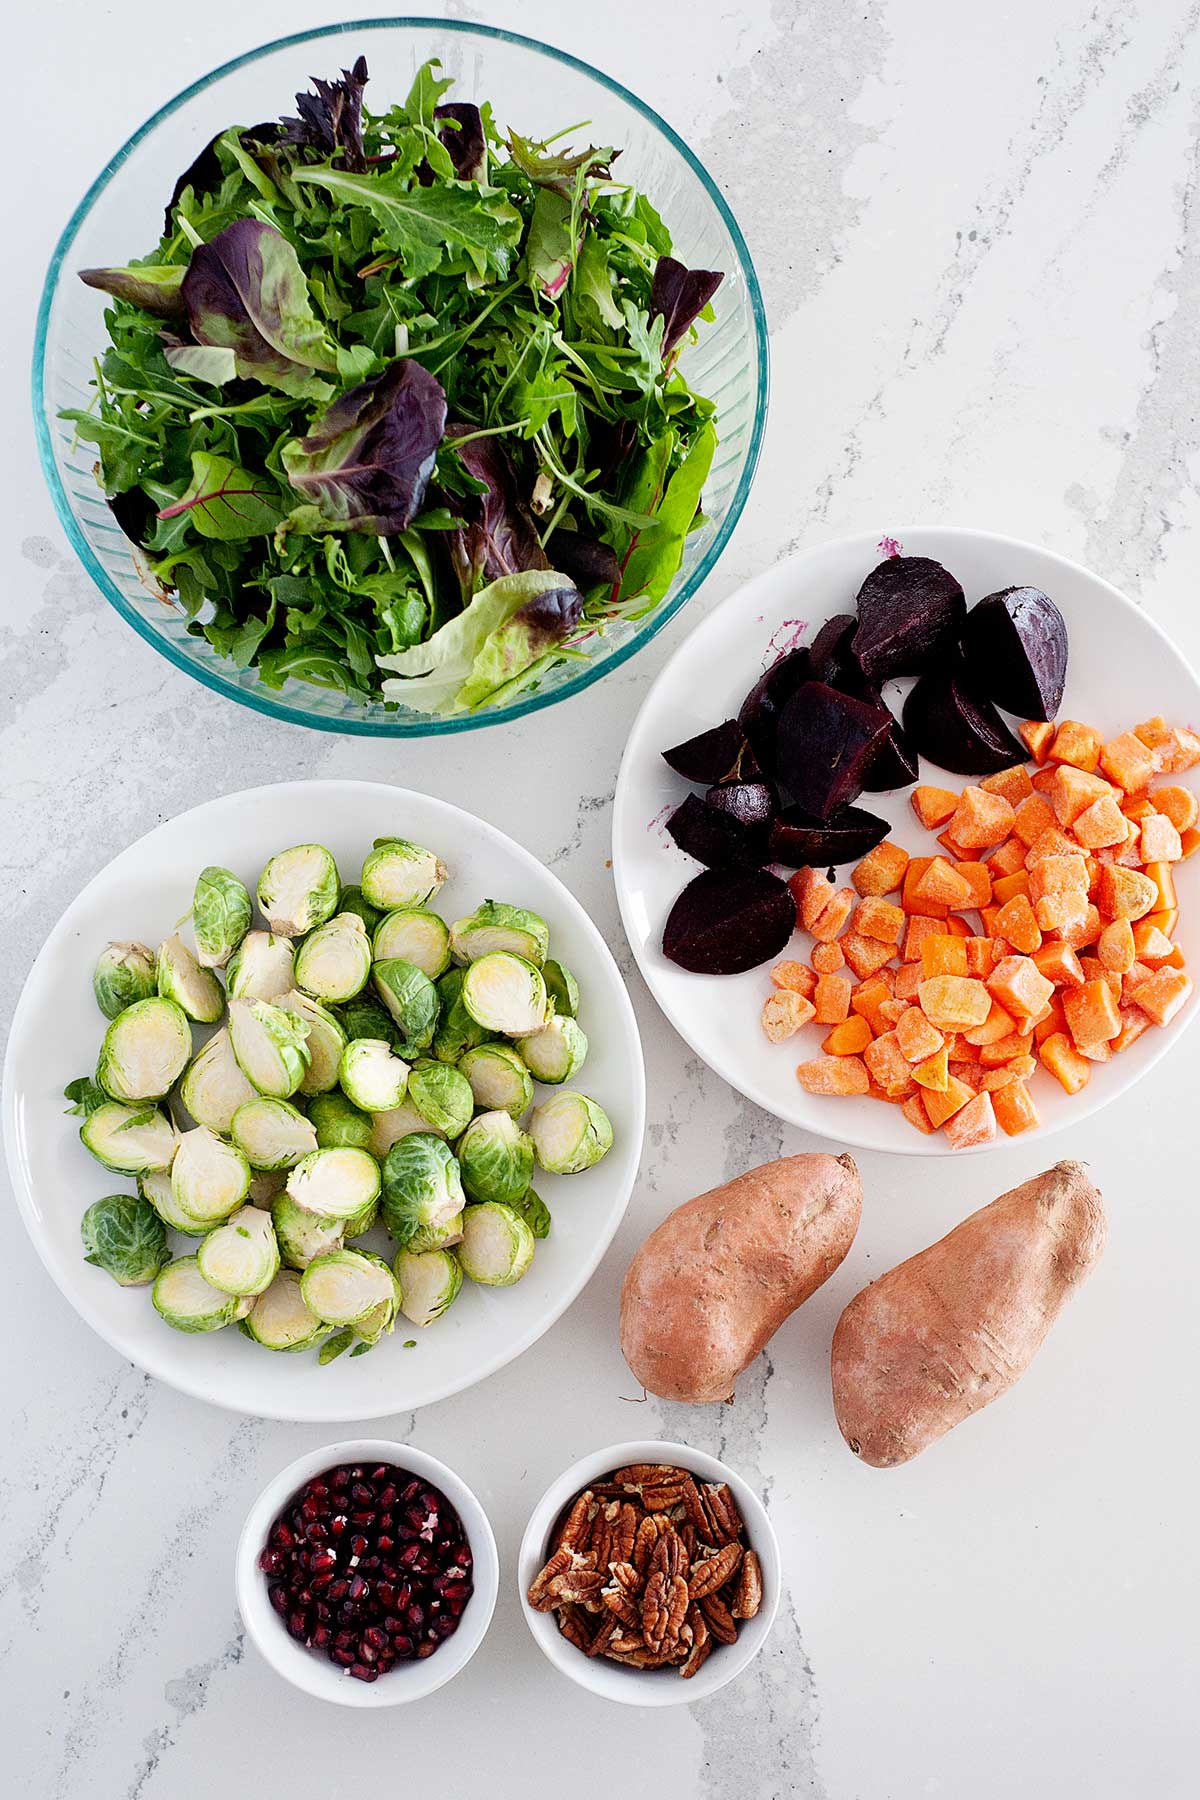 ingredients laid out in bowls for winter salad